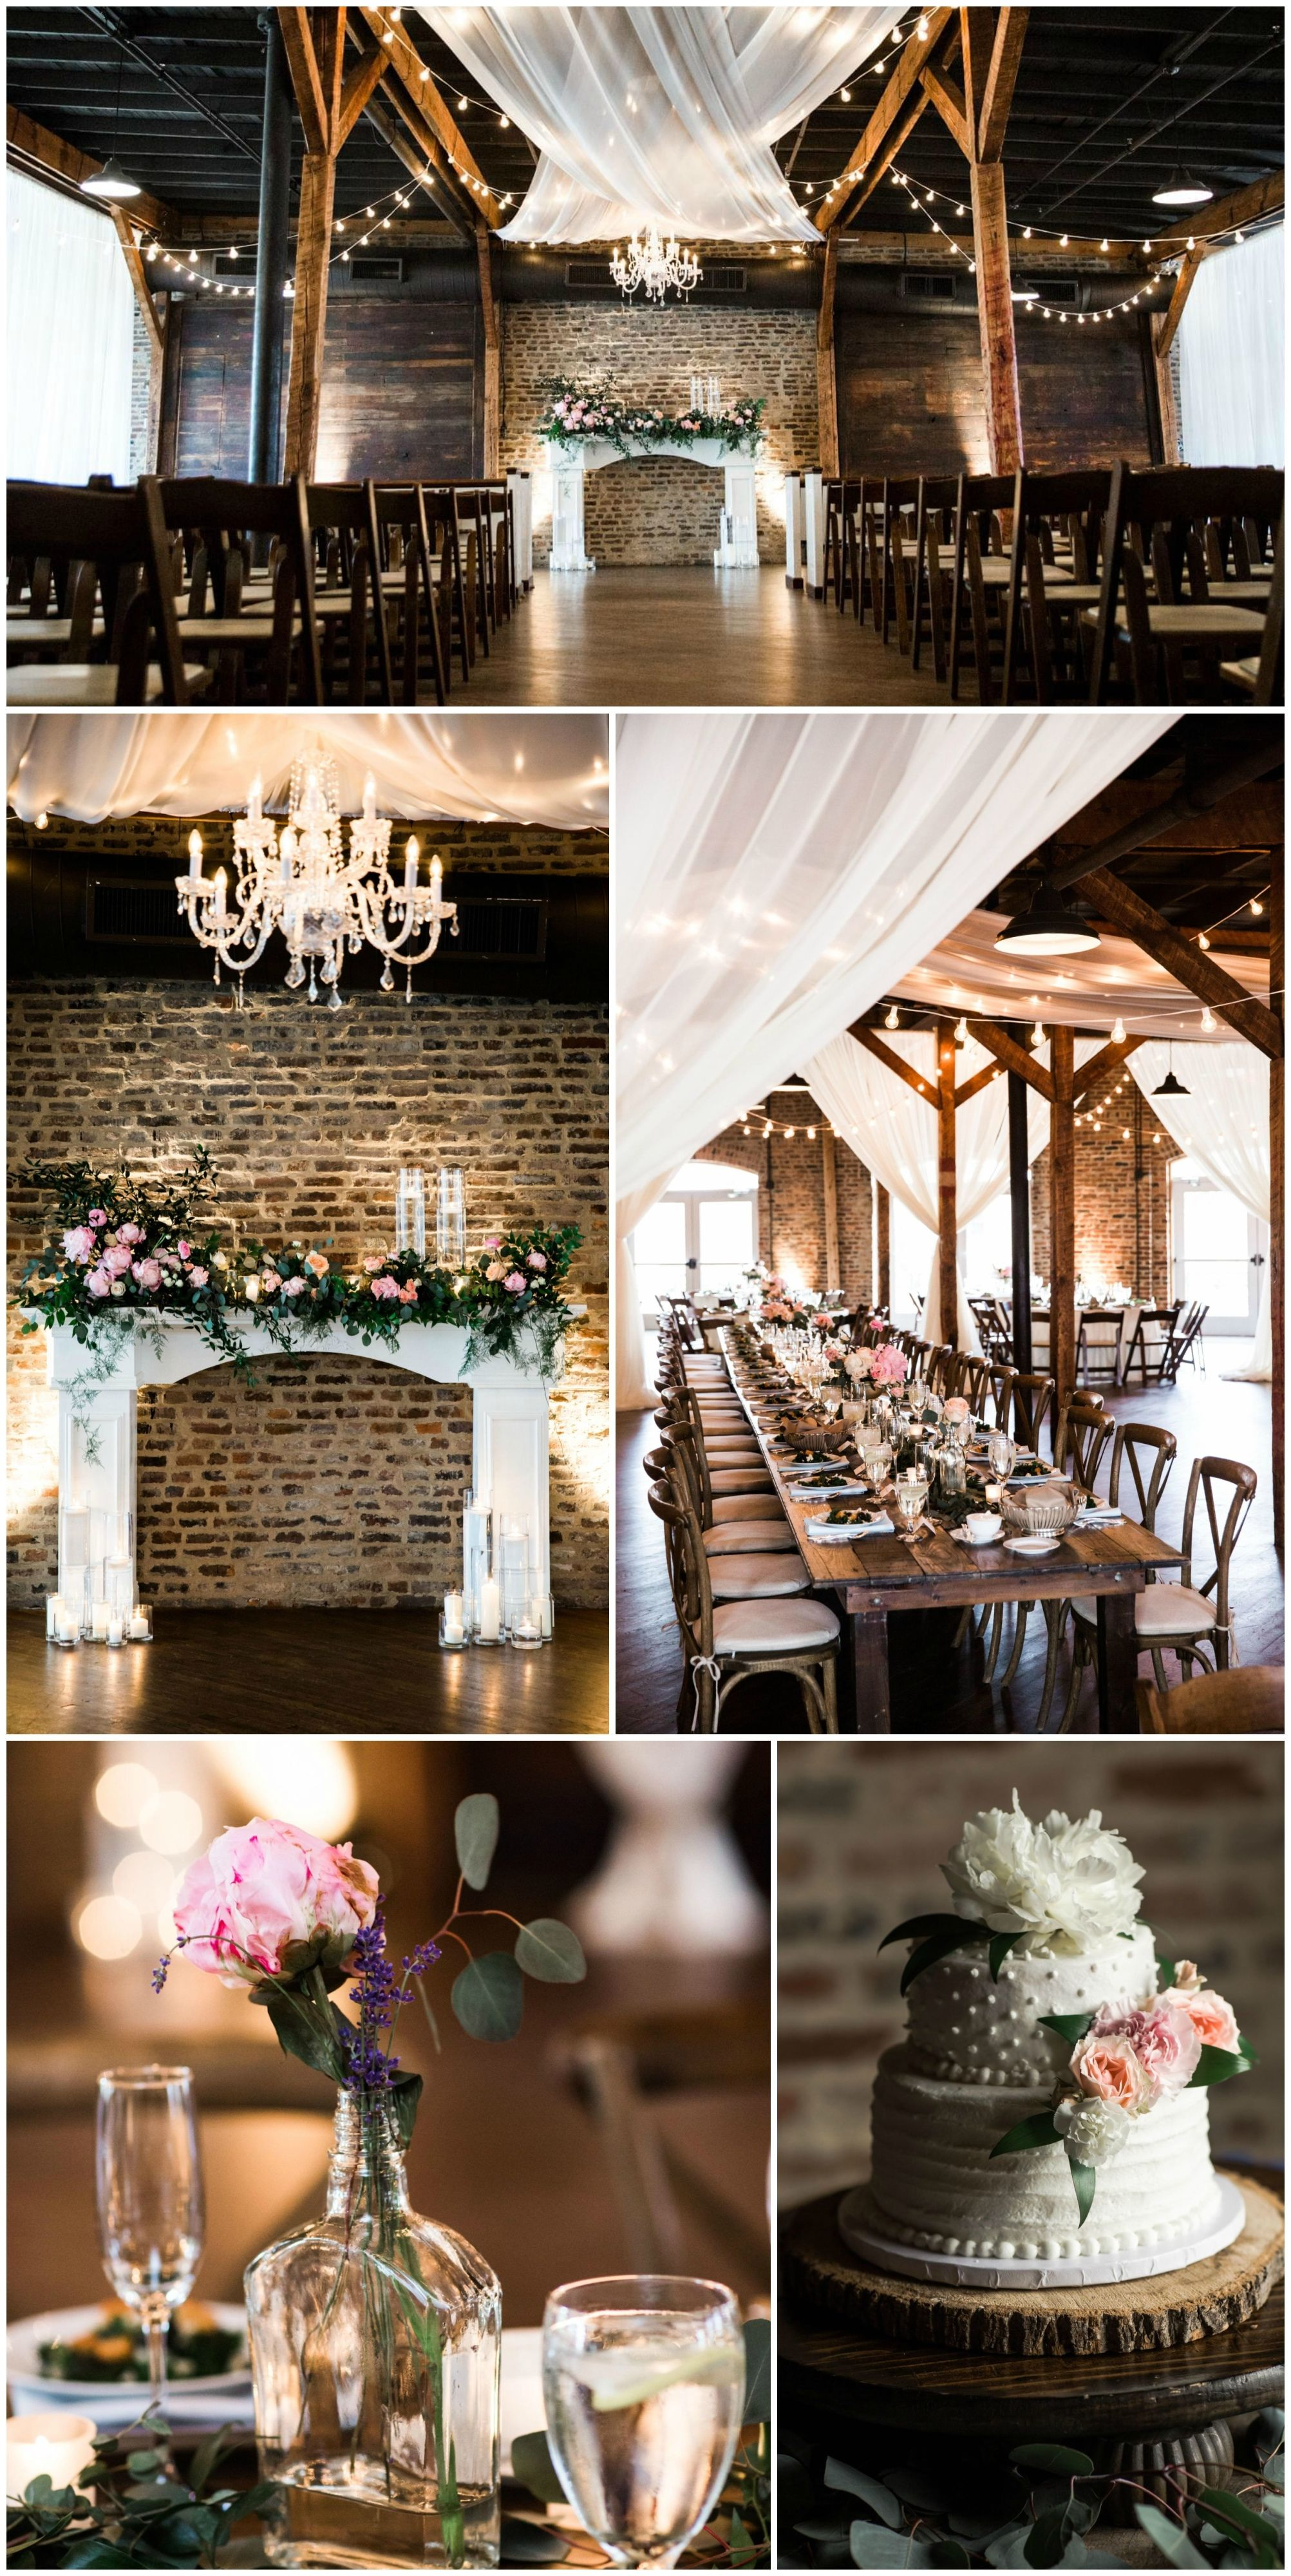 The smarter way to wed pinterest exposed brick white fabrics exposed brick wooden beams draped white fabric twinkling lights chandelier pink flowers rustic romance nyk cali junglespirit